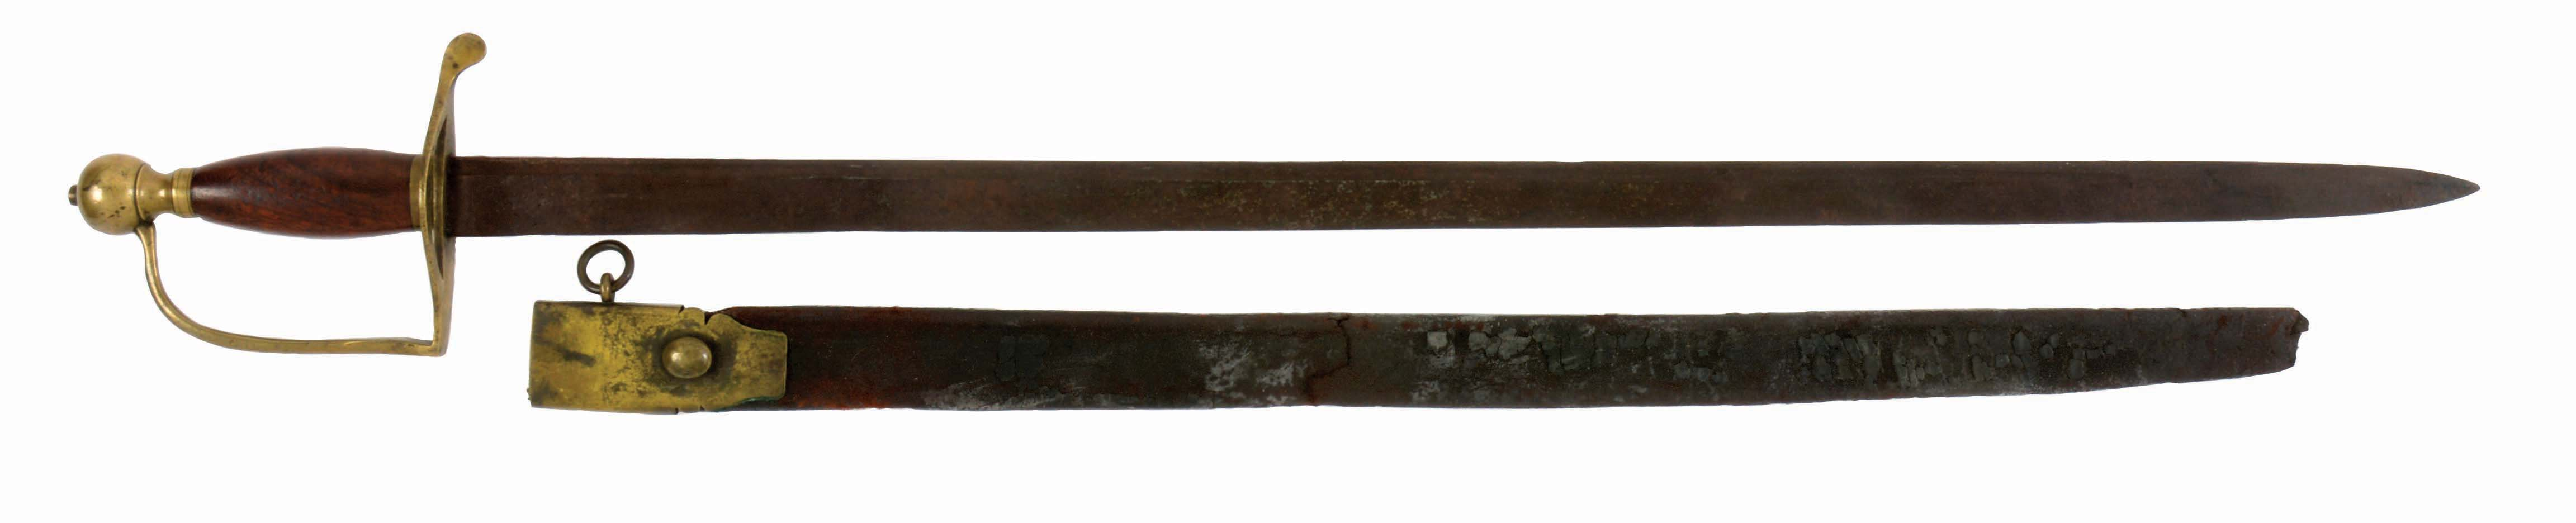 RARE ROSE NON-COMMISSIONED ARTILLERY OFFICER'S SWORD WITH SCABBARD.